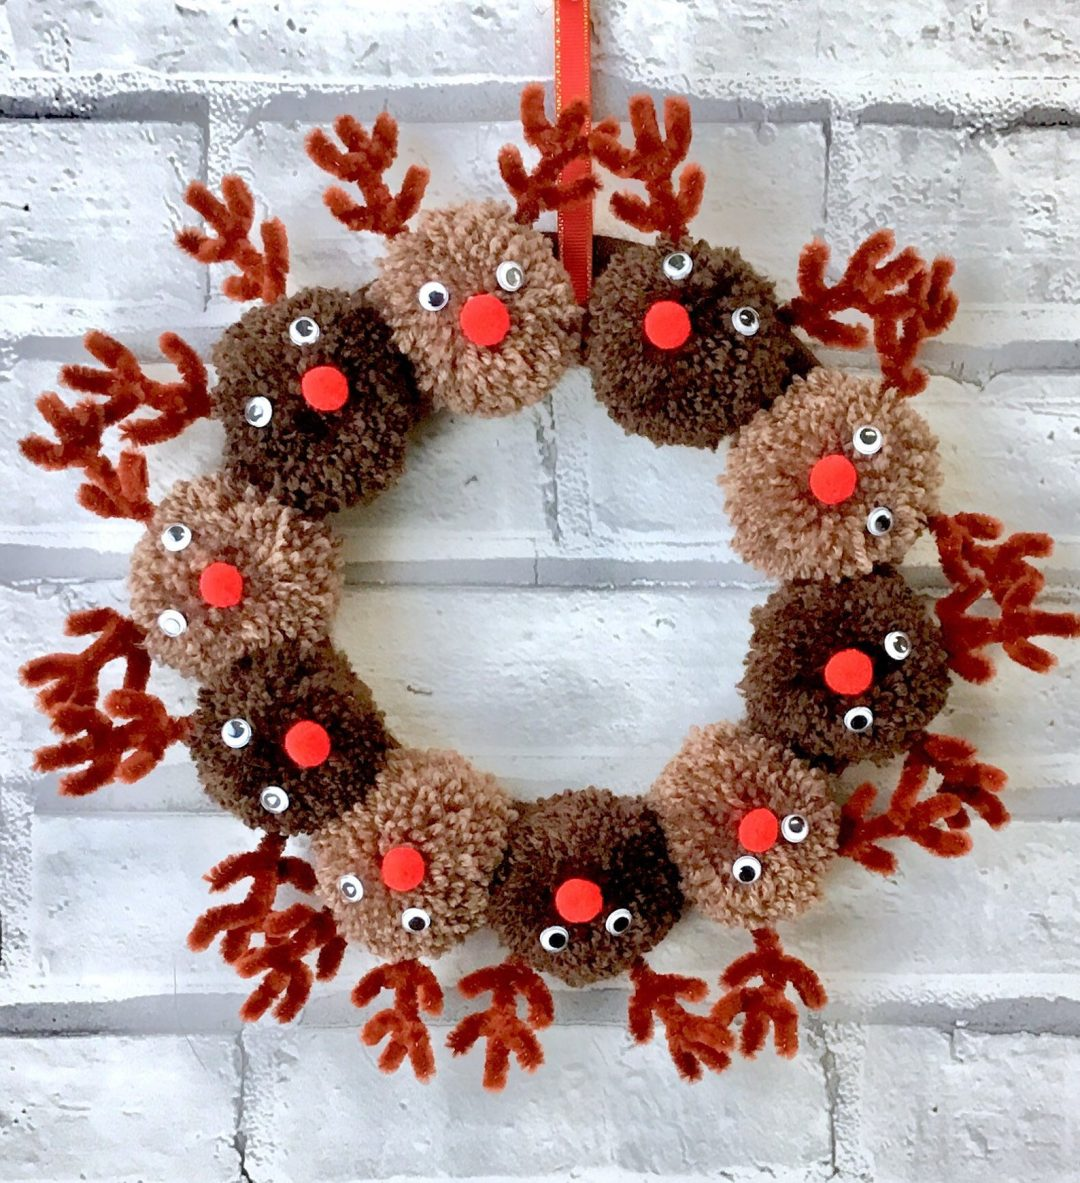 Pom pom wreath with Rudolph the red nosed reindeer